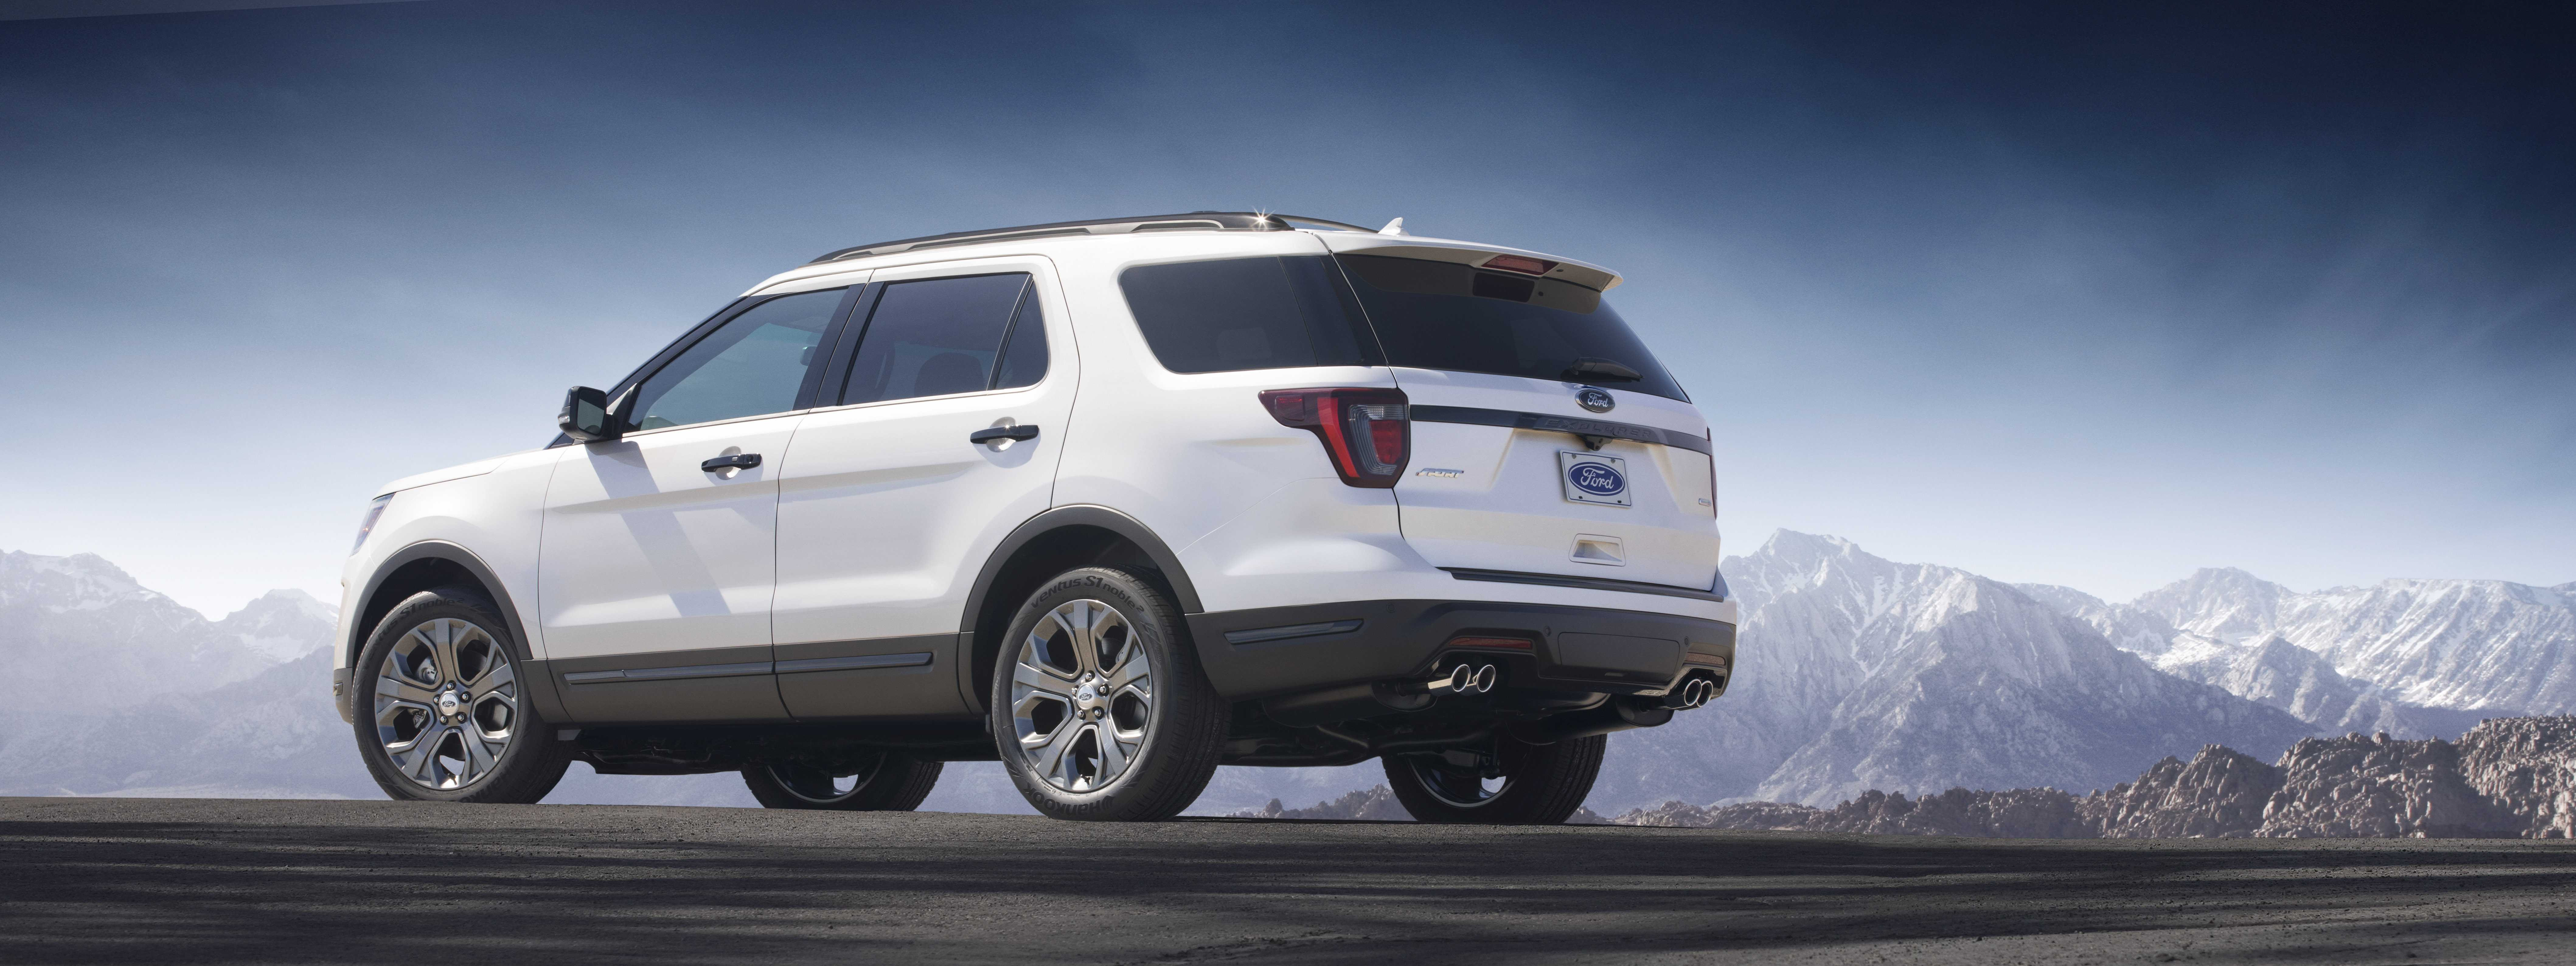 ford hearses explorer sport for latches door ambulances issues h recalls other news